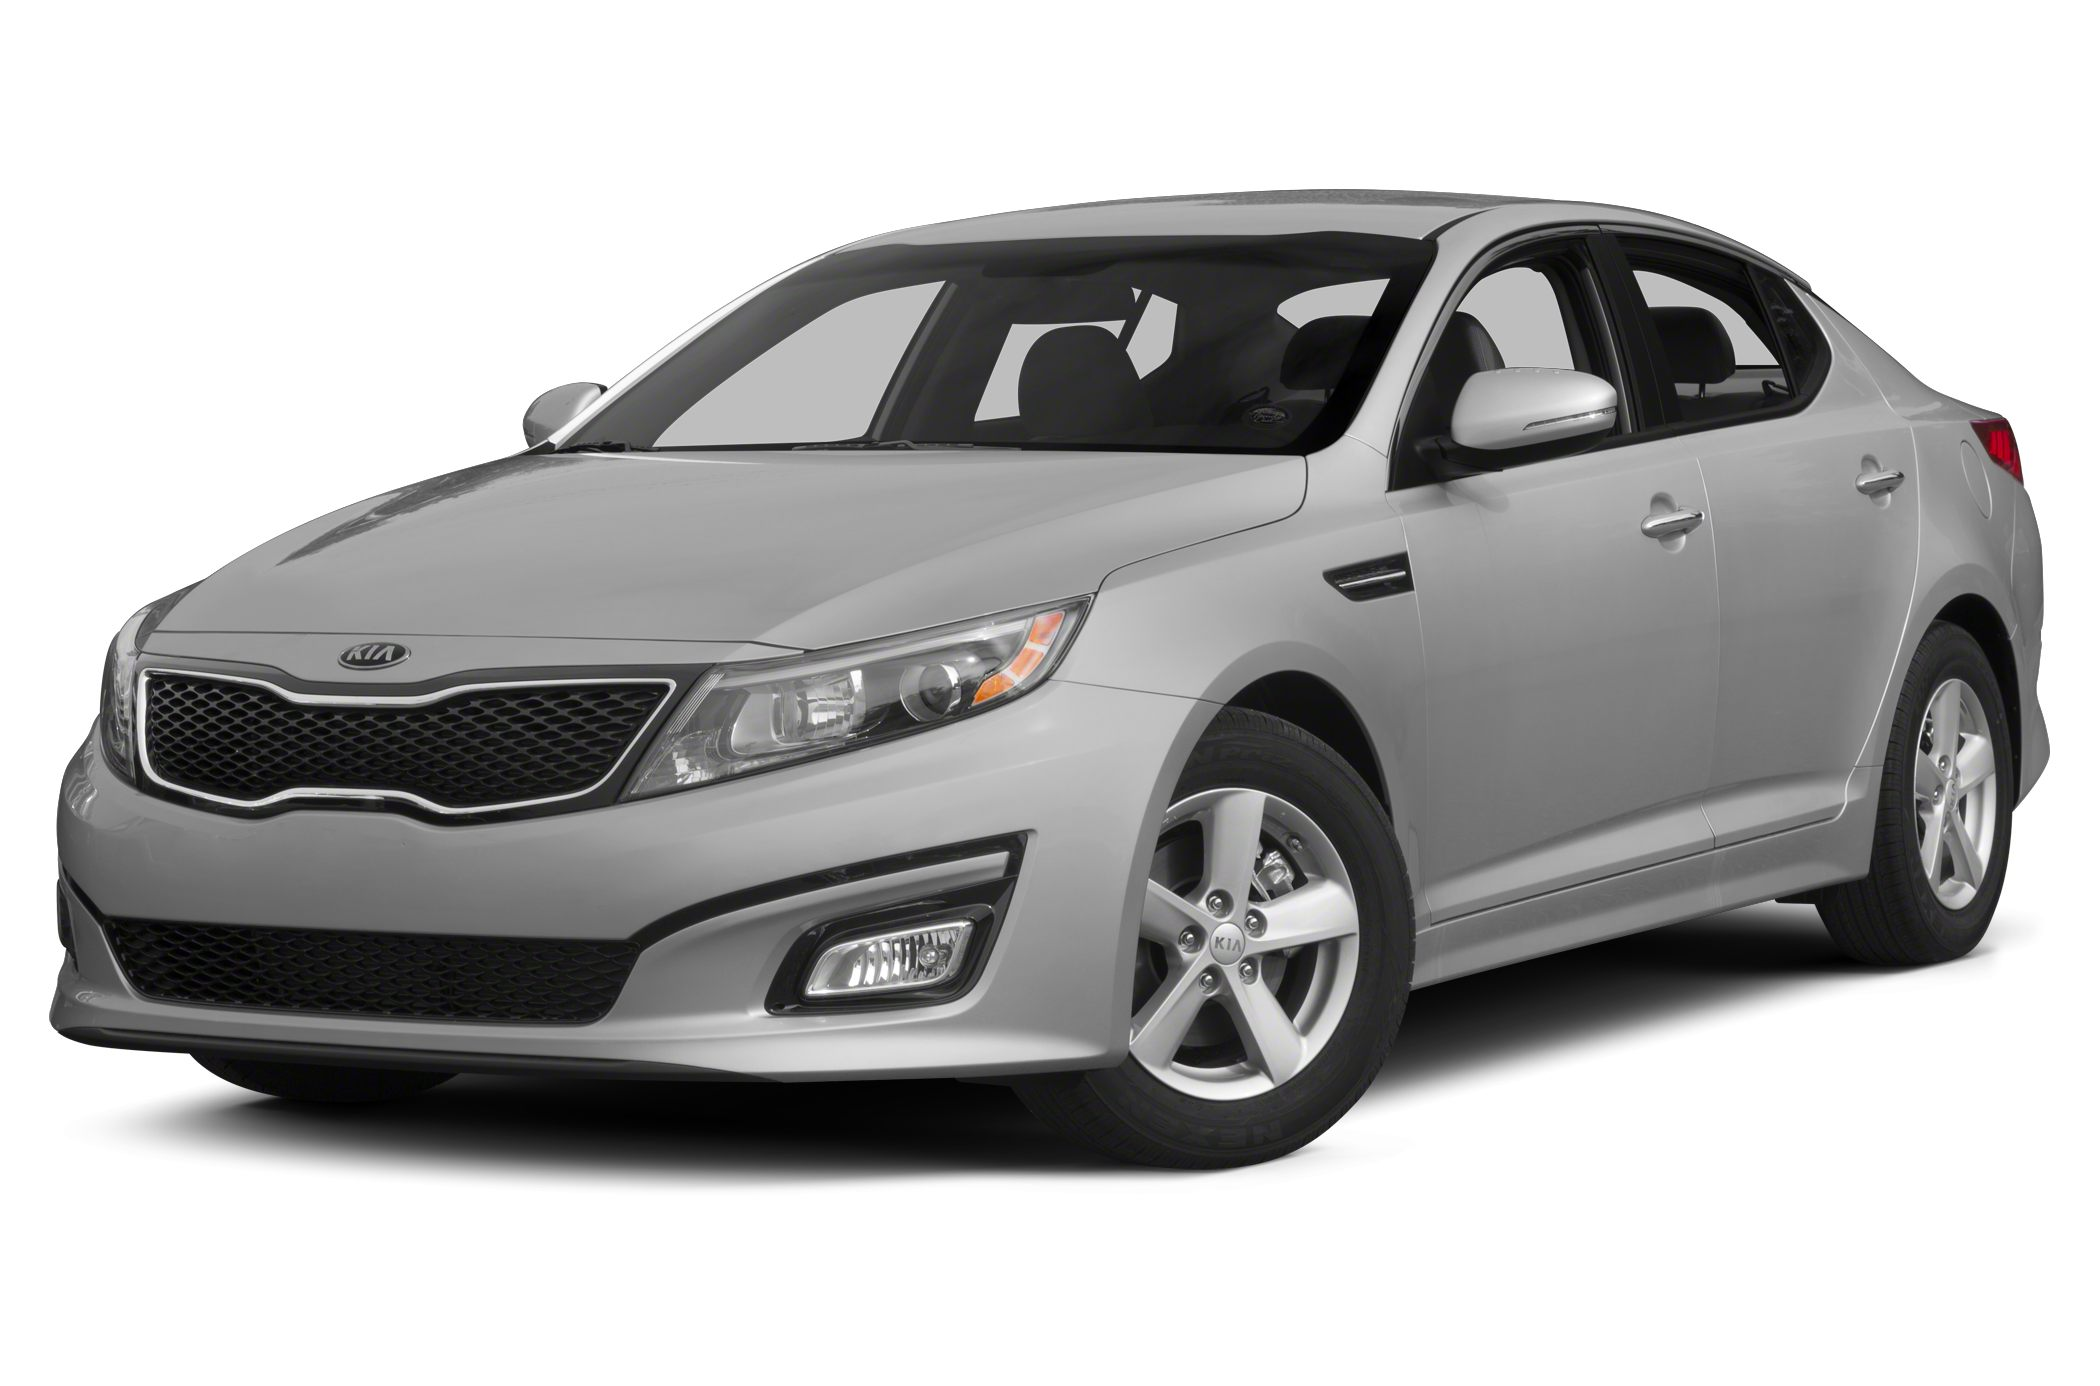 2015 Kia Optima LX Miles 6670Color Gray Stock 17420 VIN 5XXGM4A79FG462022